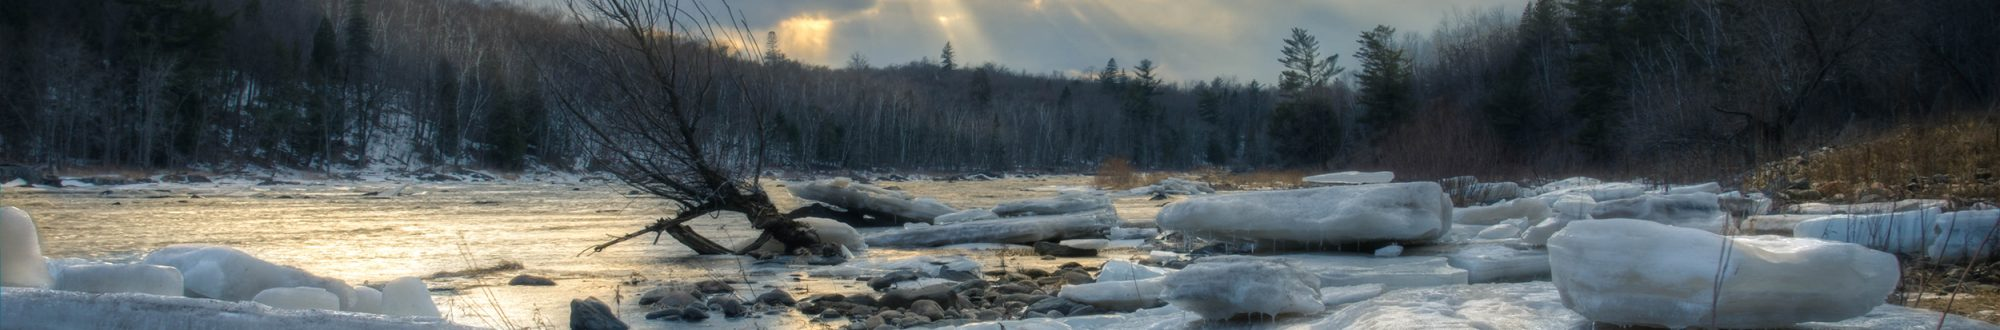 Jay Cooke State Park icebergs by Mick Rollins